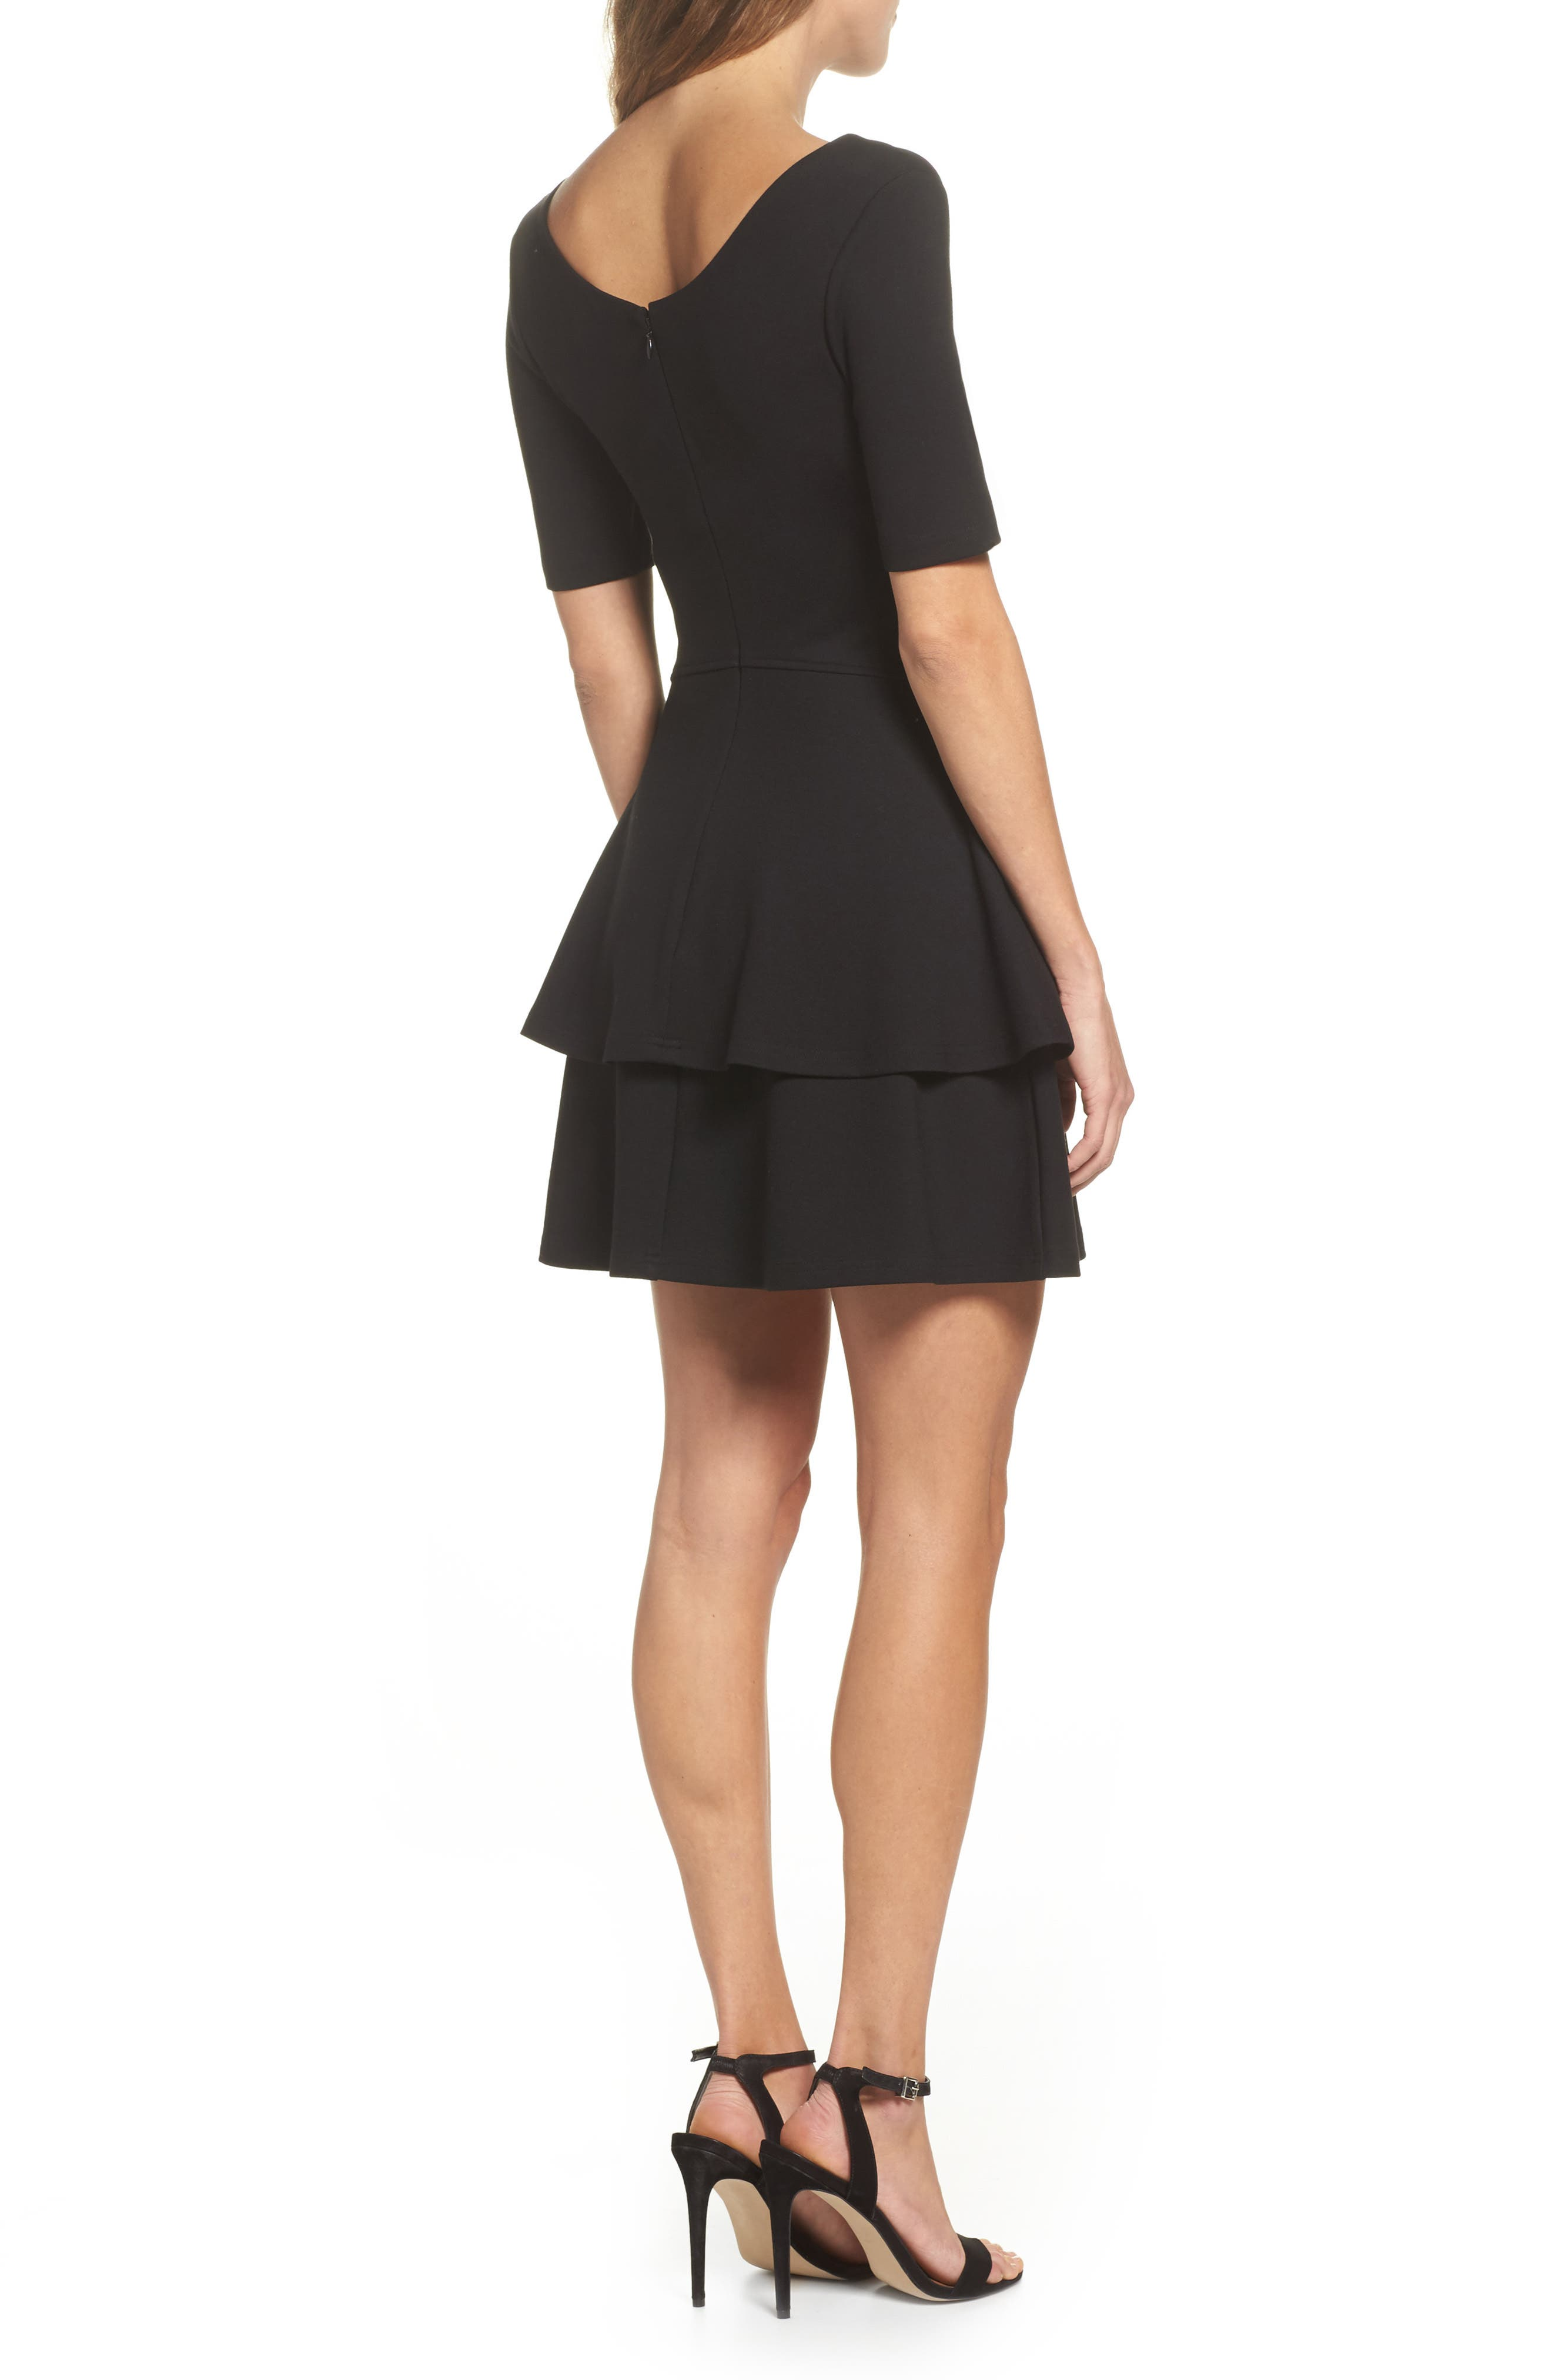 Isn't It Sweet Fit & Flare Dress,                             Alternate thumbnail 3, color,                             Black